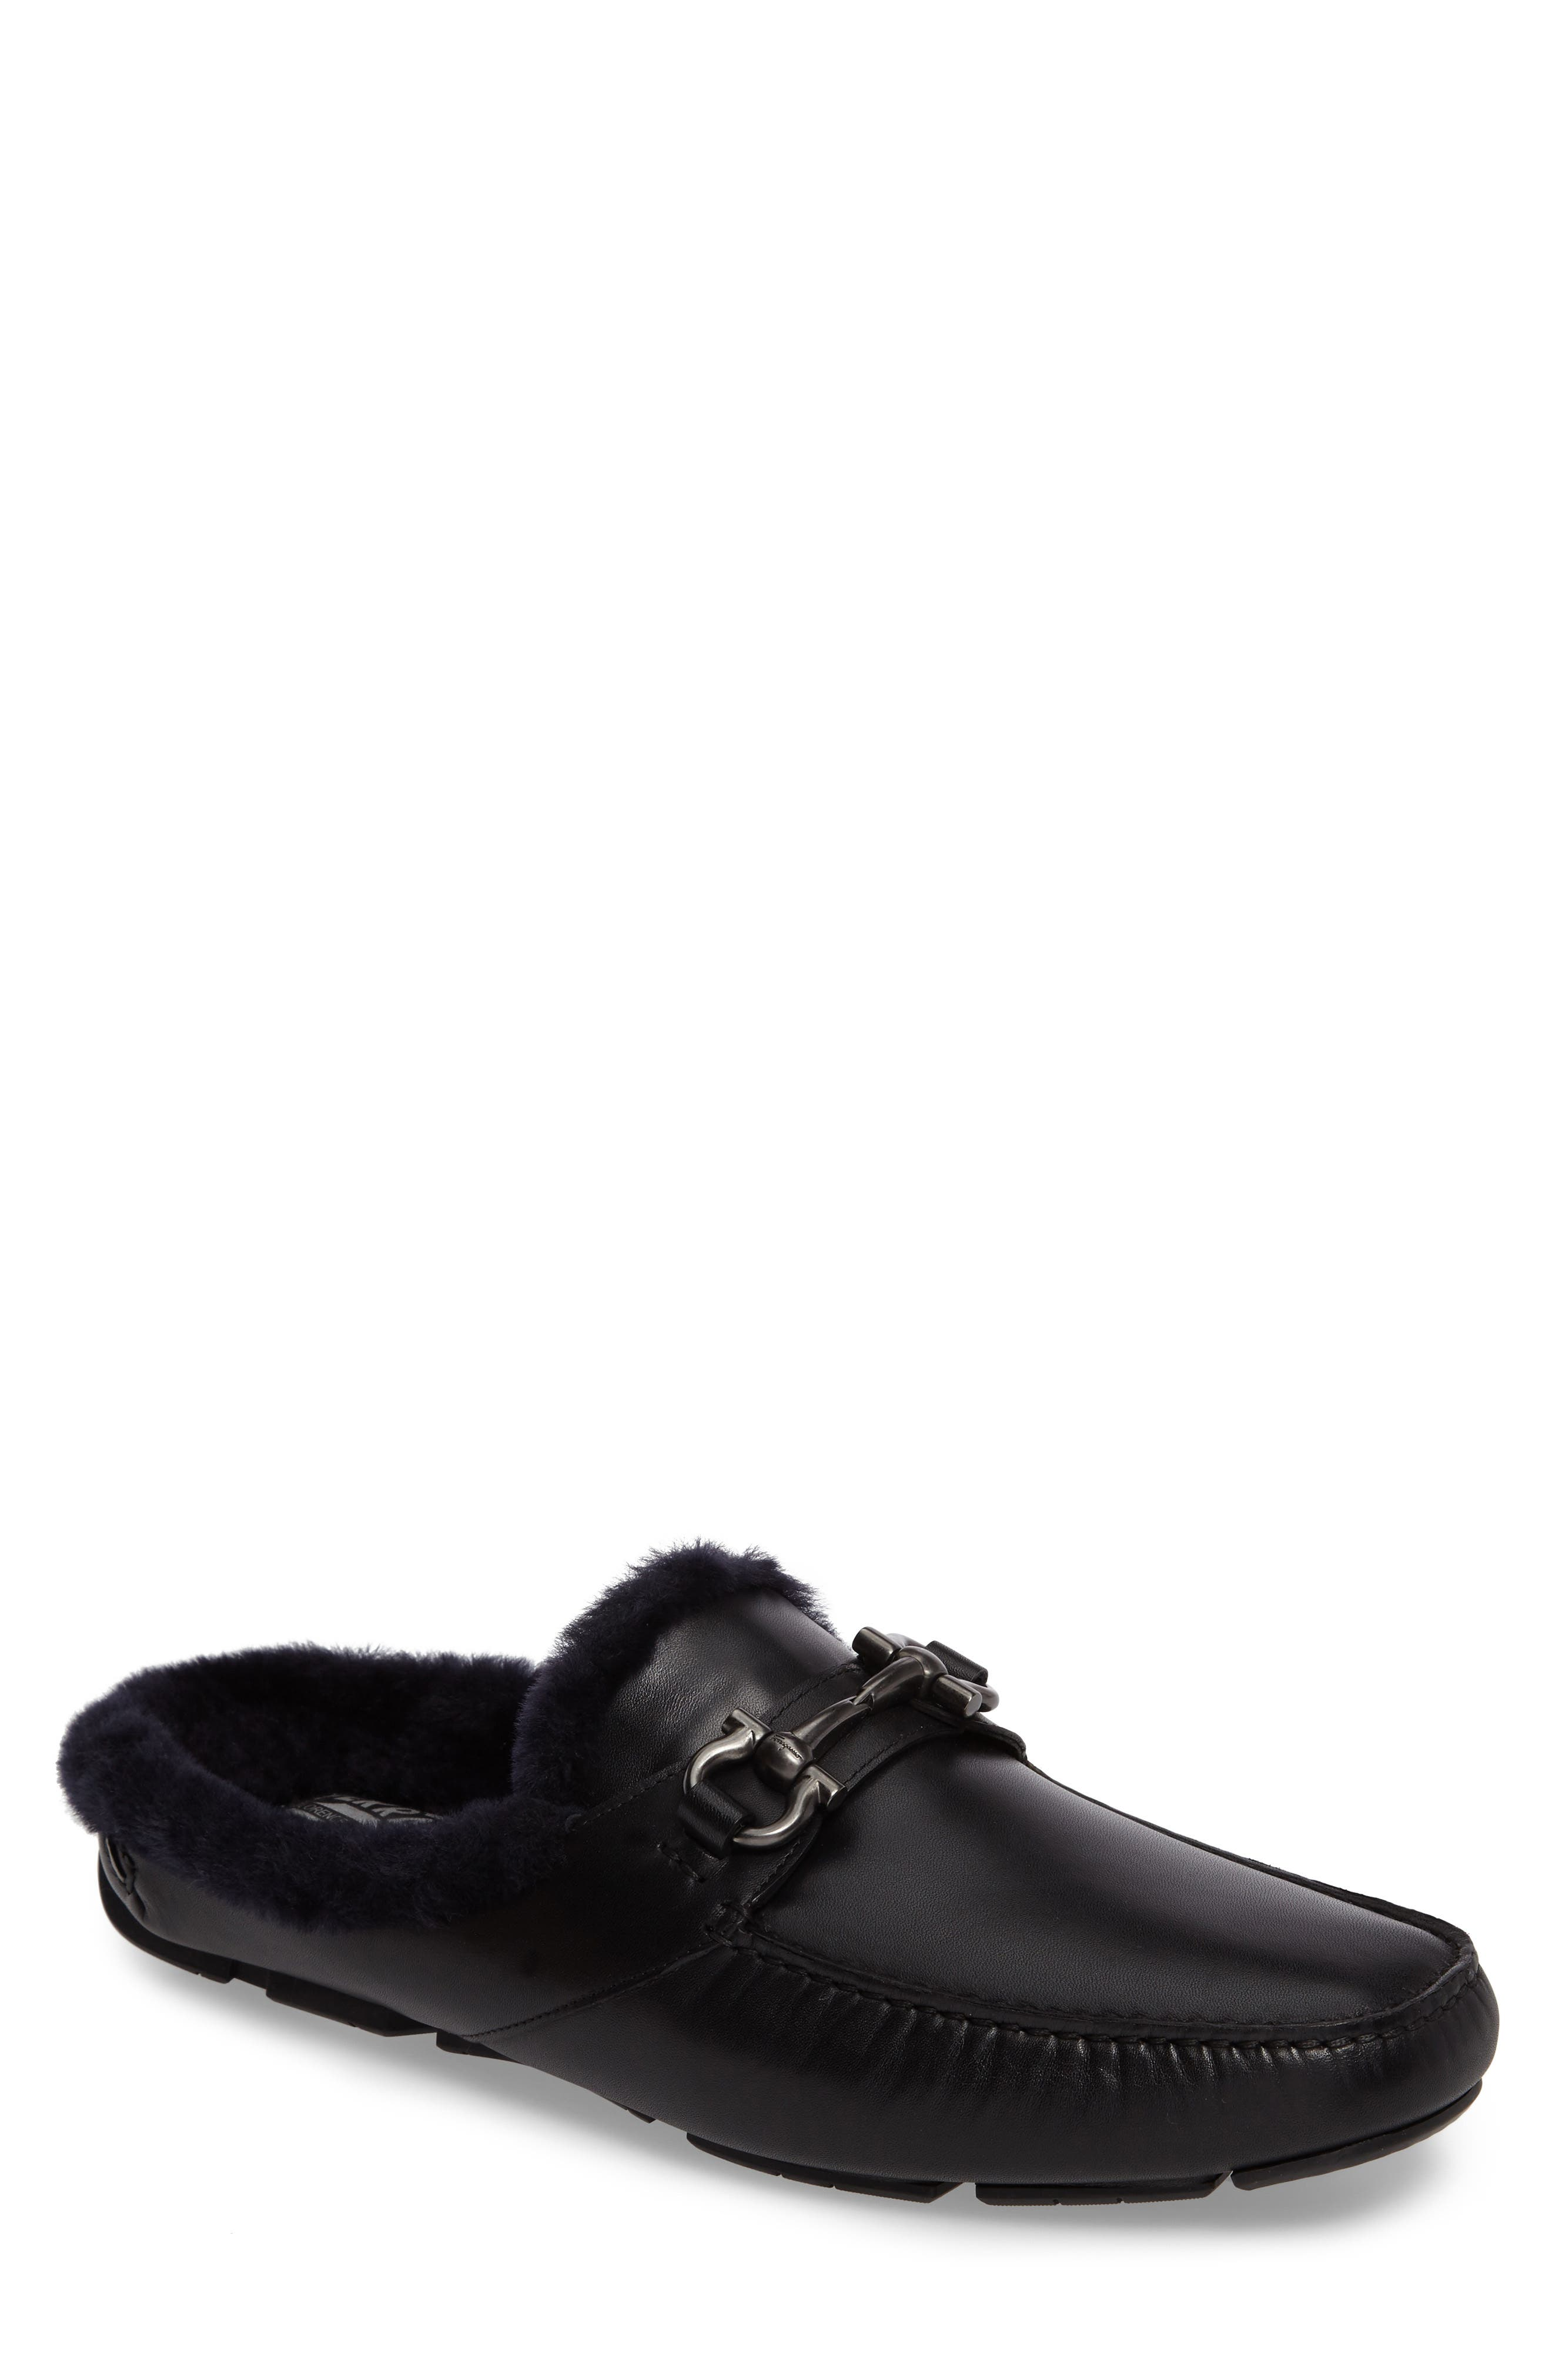 Alternate Image 1 Selected - Salvatore Ferragamo Driving Loafer with Genuine Shearling (Men)